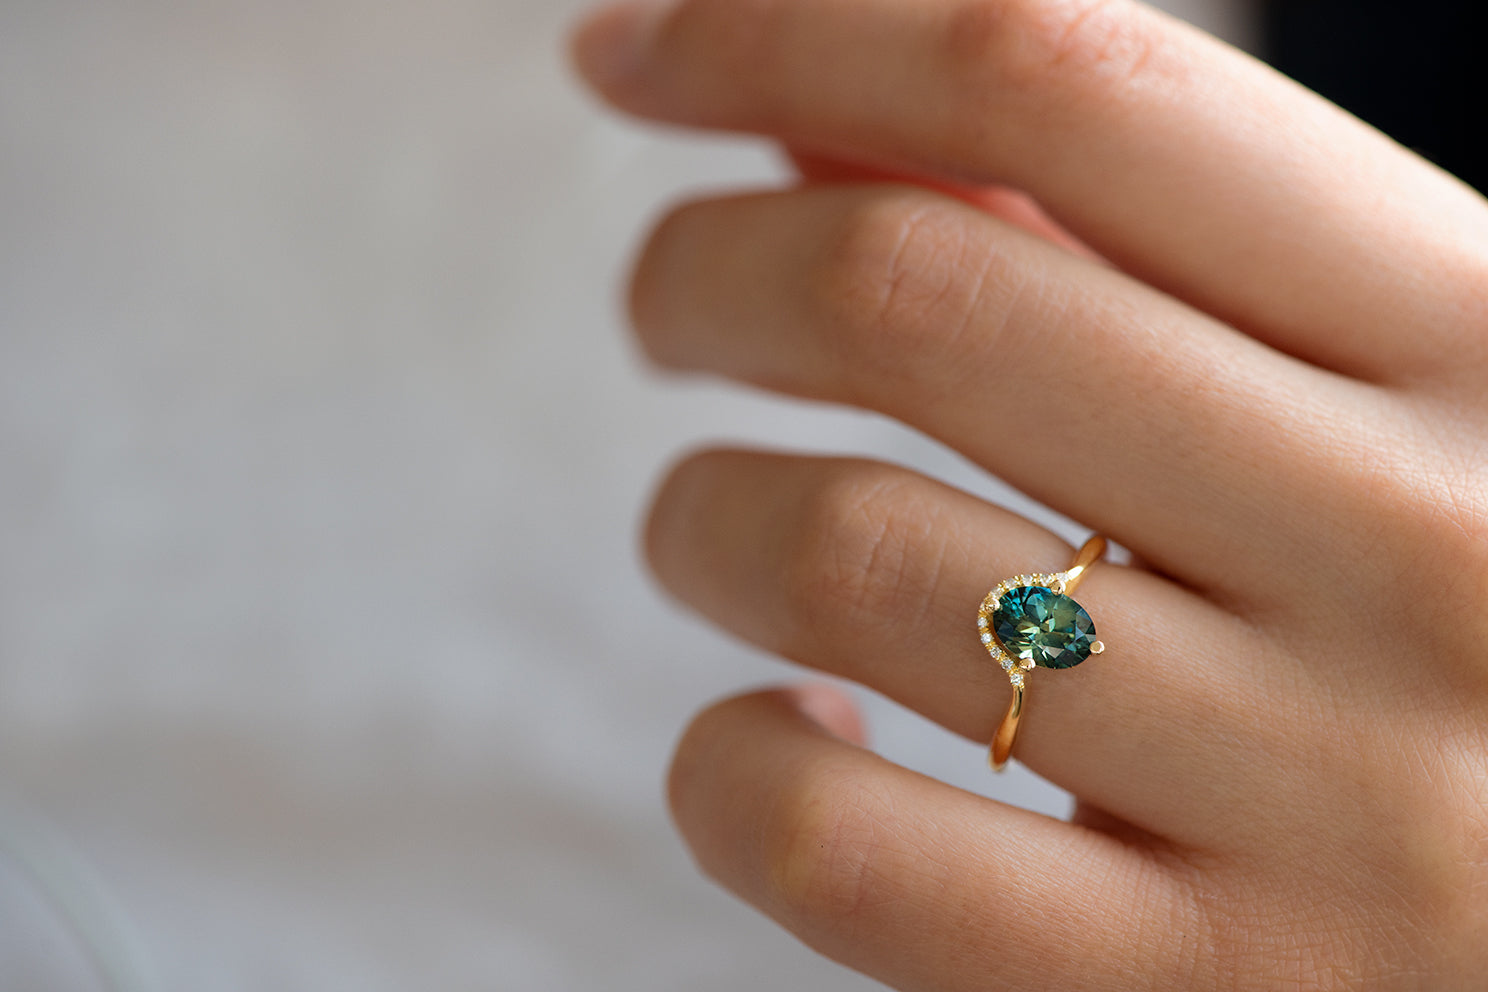 Teal Sapphire Engagement Ring - OOAK on Hand Up Close in Shadow